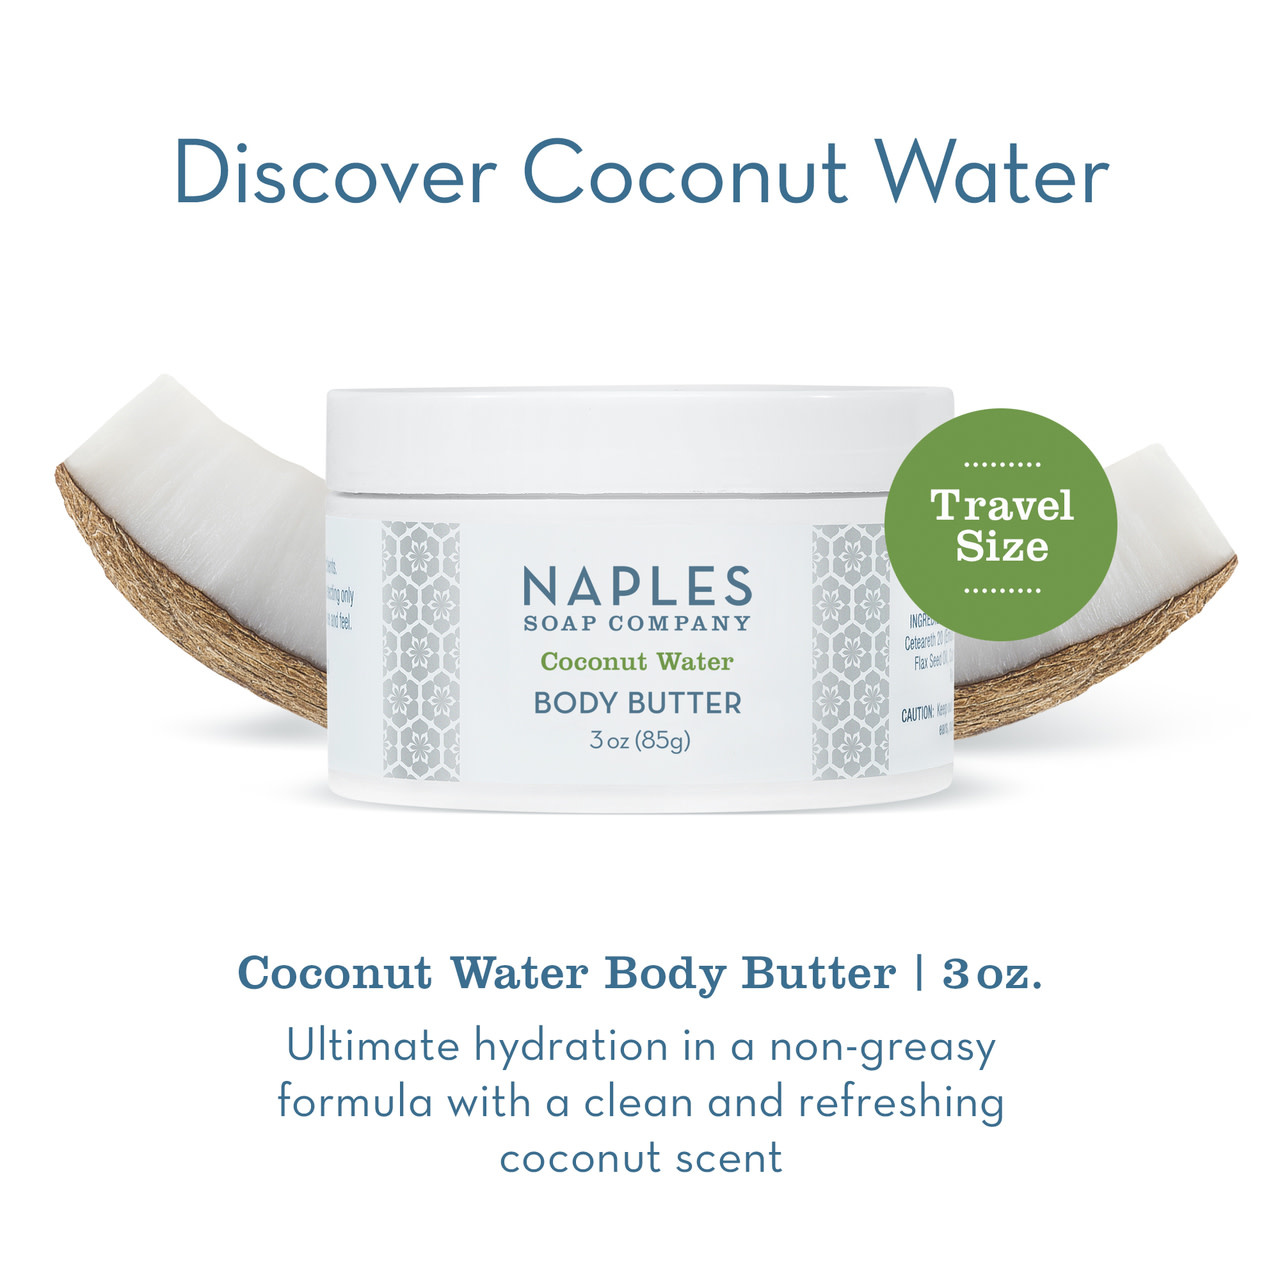 Naples Soap Co. Coconut Water Body Butter 3 oz